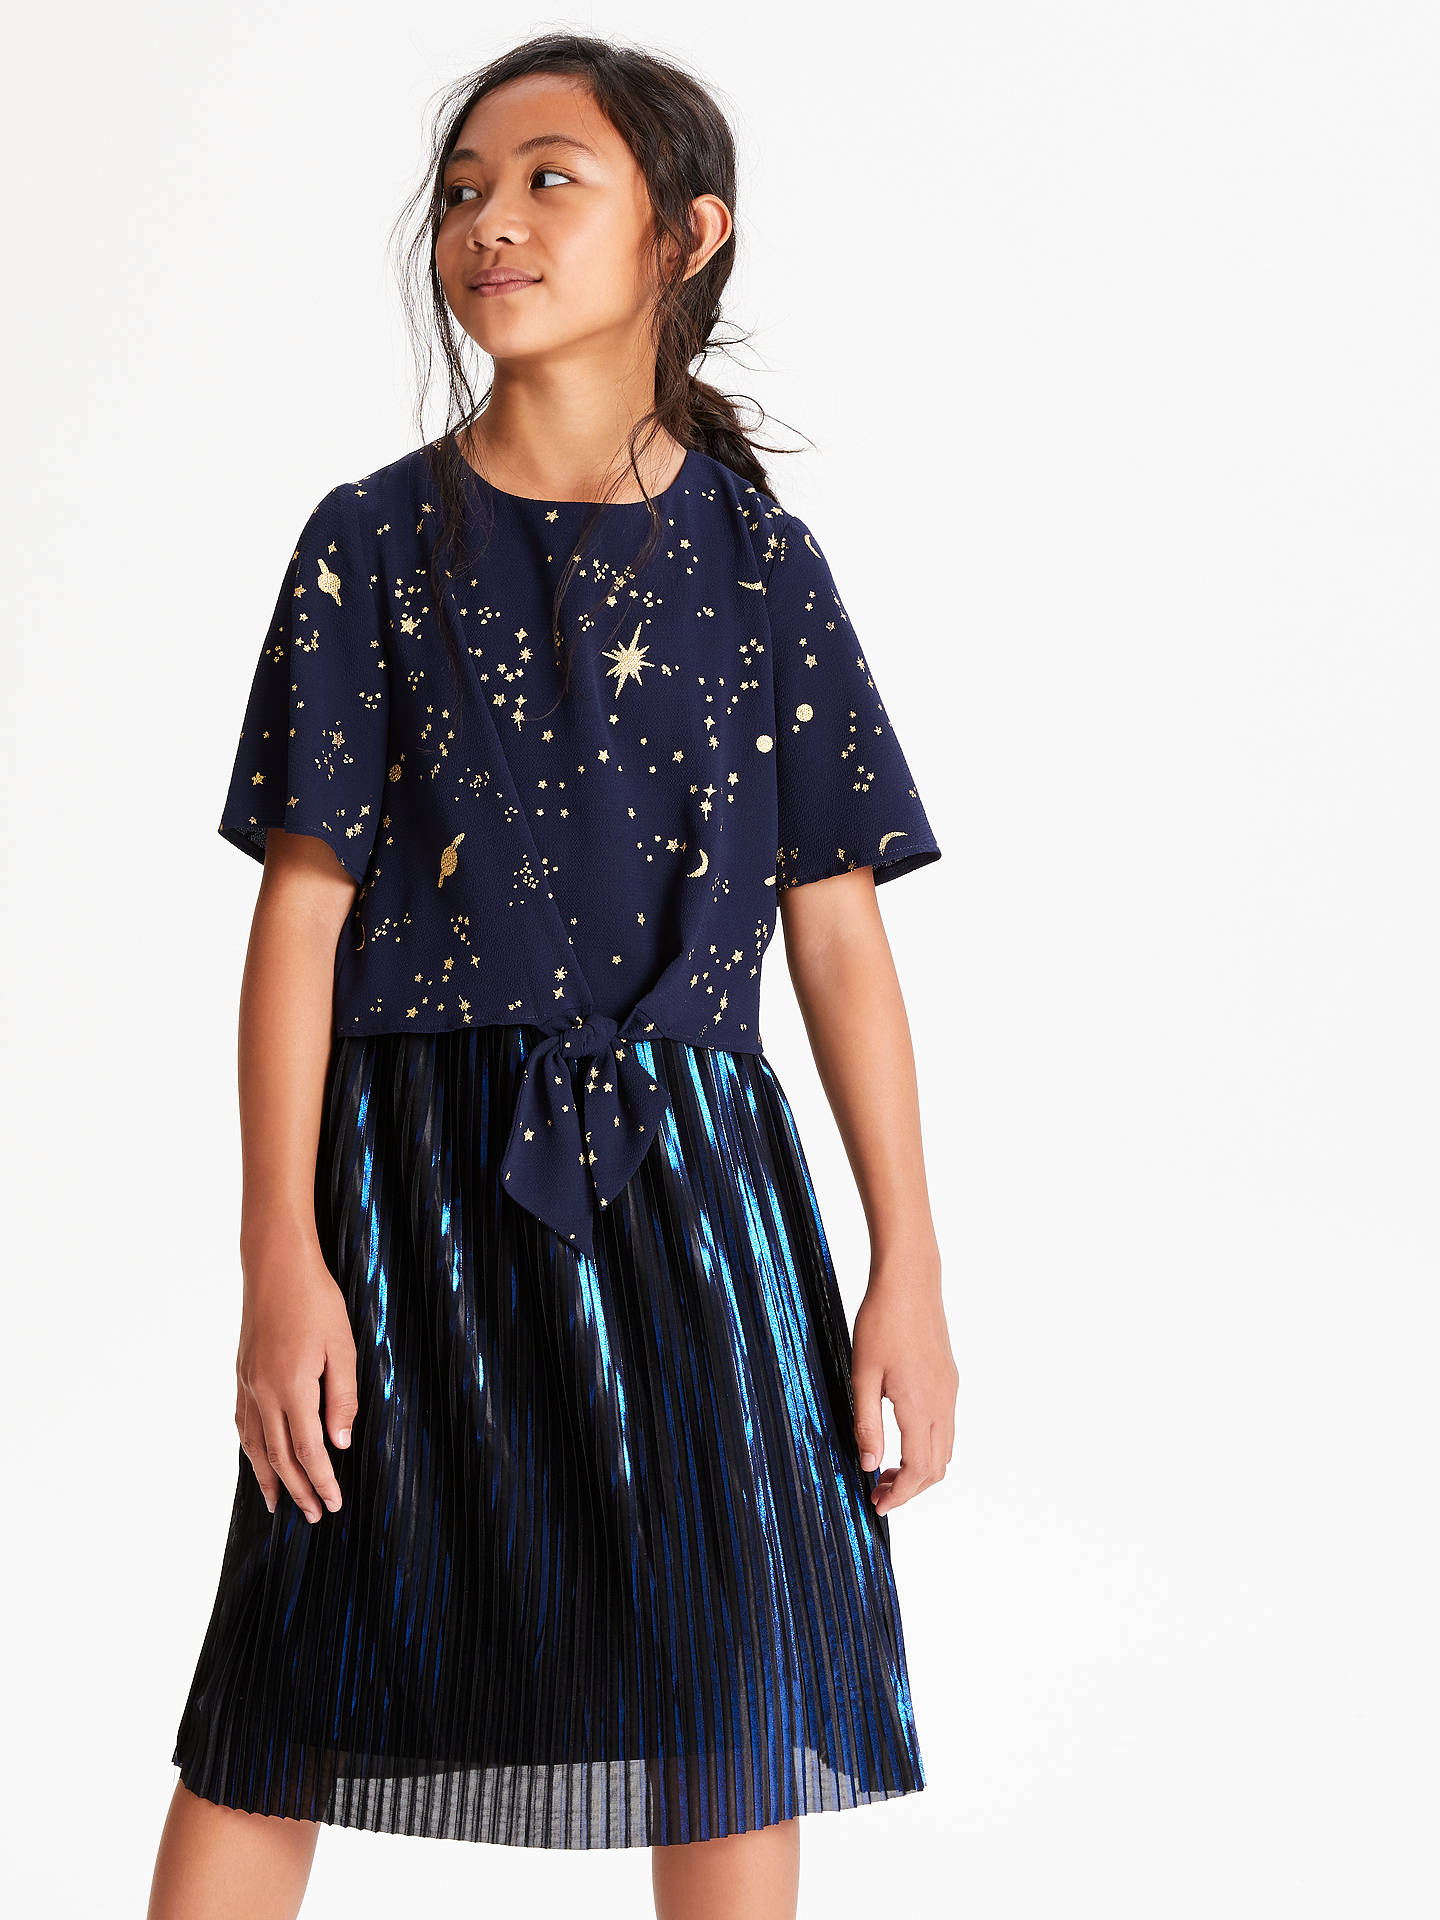 BuyJohn Lewis & Partners Girls' Celestial Print Top, Navy, 8 years Online at johnlewis.com